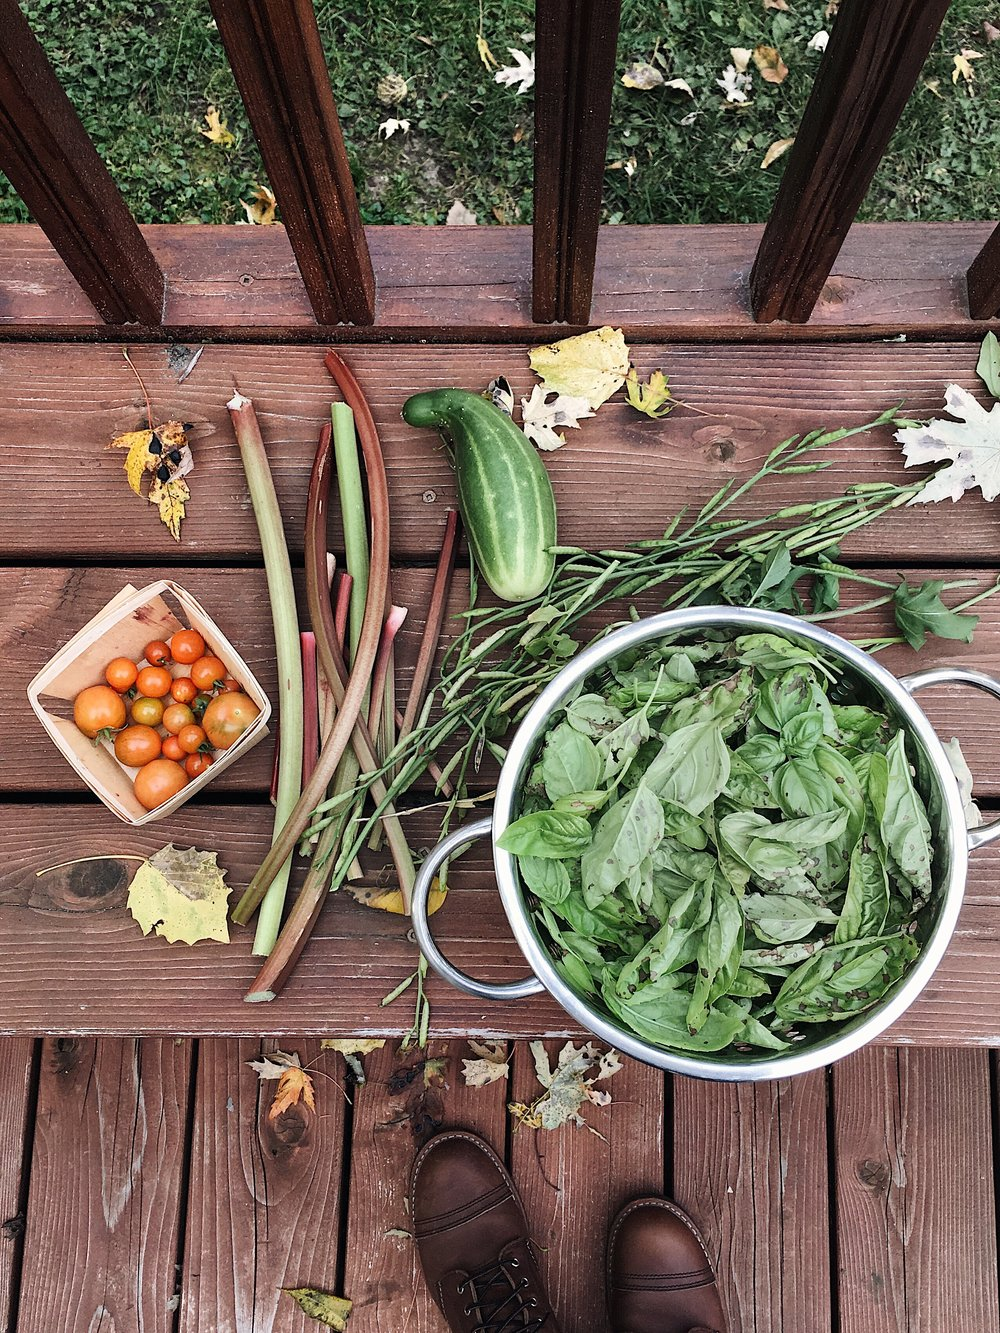 "THE ""LAST OF THE GARDEN"" HARVESTS FROM OUR 2017 SEASON. WE MADE A CELEBRATORY BATCH OF PESTO WITH THAT LOAD OF BASIL!"